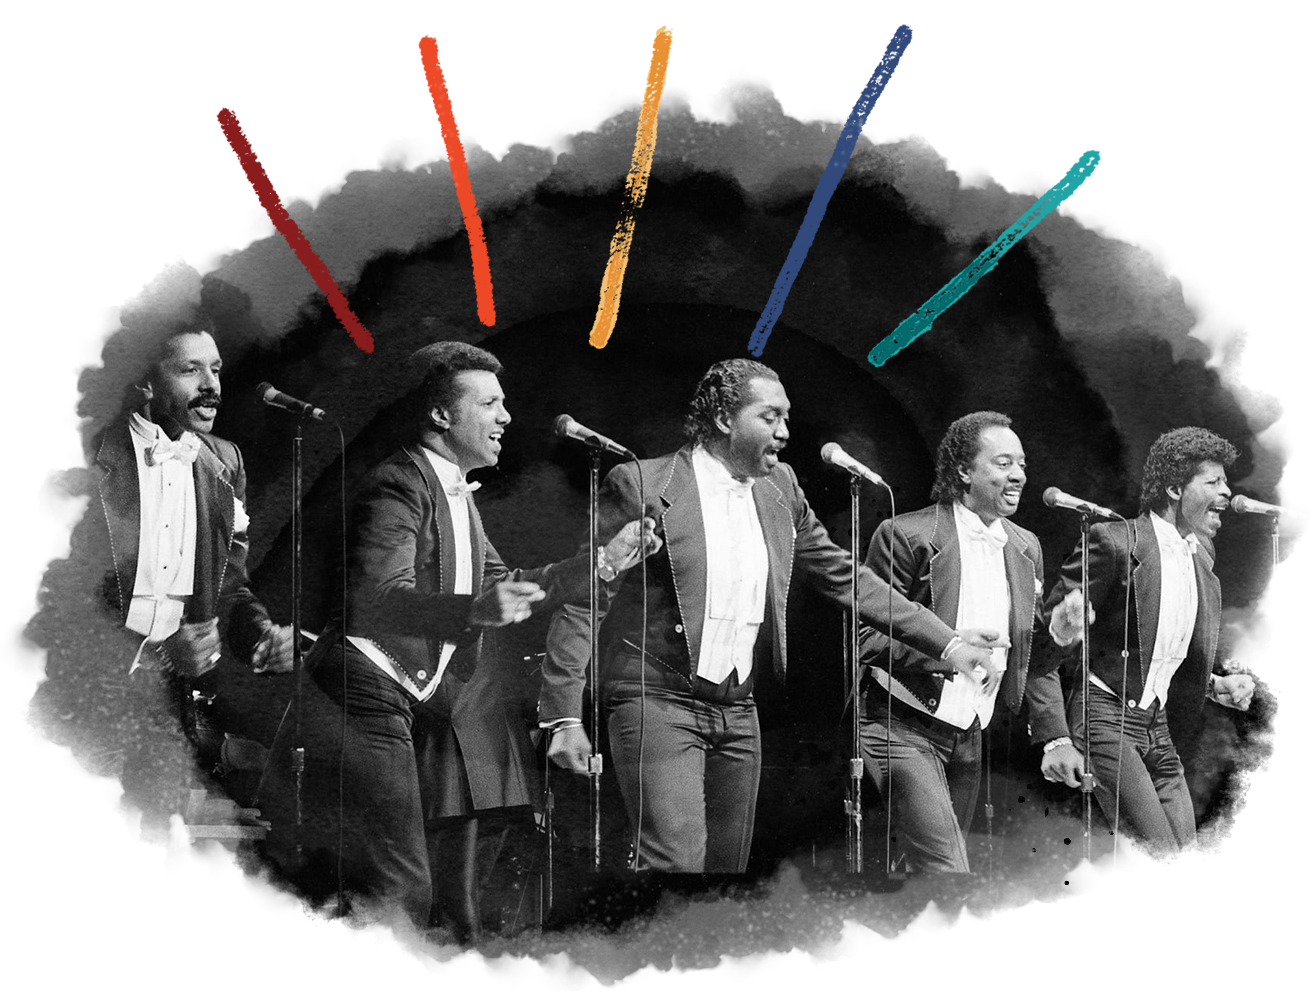 """The Temptations sing one of their Motown hits for 4,400 soul music fans that packed the Grand Ole Opry House on Feb. 23, 1986. They shared the stage with the Four Tops as part of the """"Tempts and Tops"""" tour."""